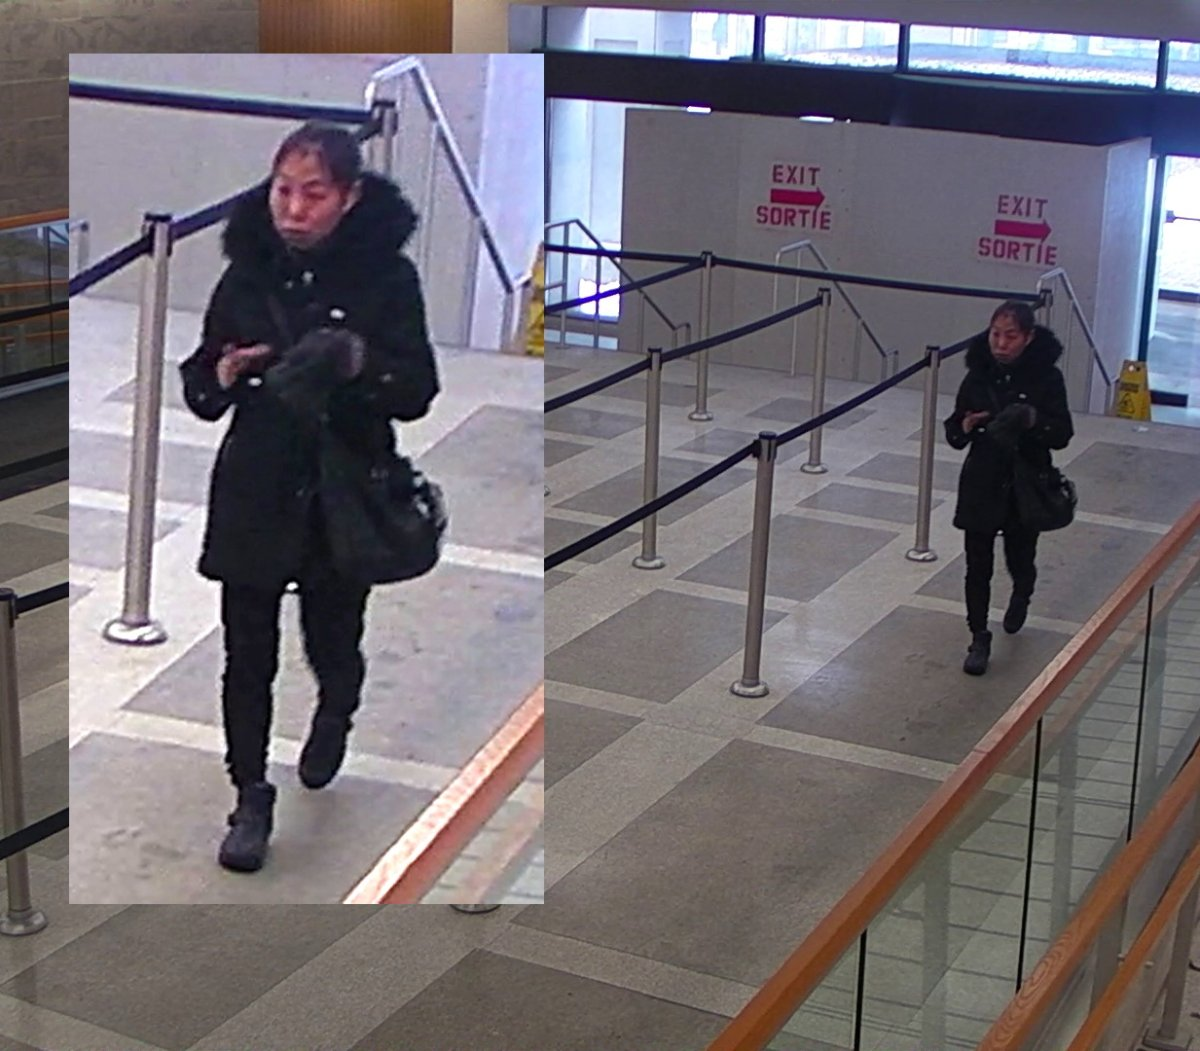 The Ottawa Police Service's major crime unit has taken over the missing person's case of Susan Kuplu, 37, who was last seen in Ottawa on Jan. 10.